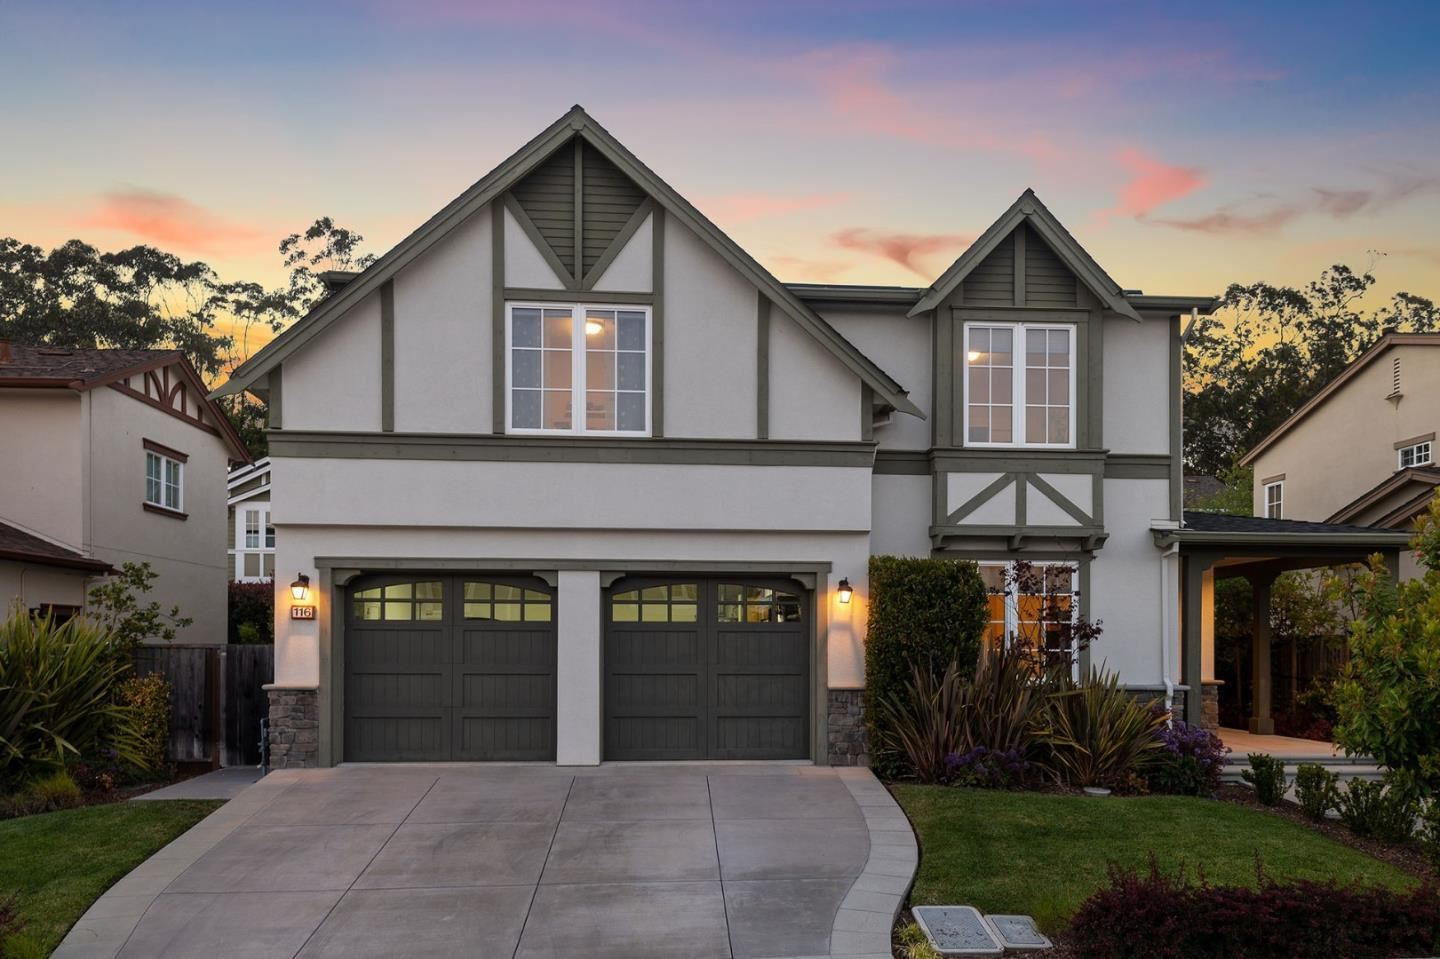 Photo for 116 Carnoustie Drive, HALF MOON BAY, CA 94019 (MLS # ML81847347)